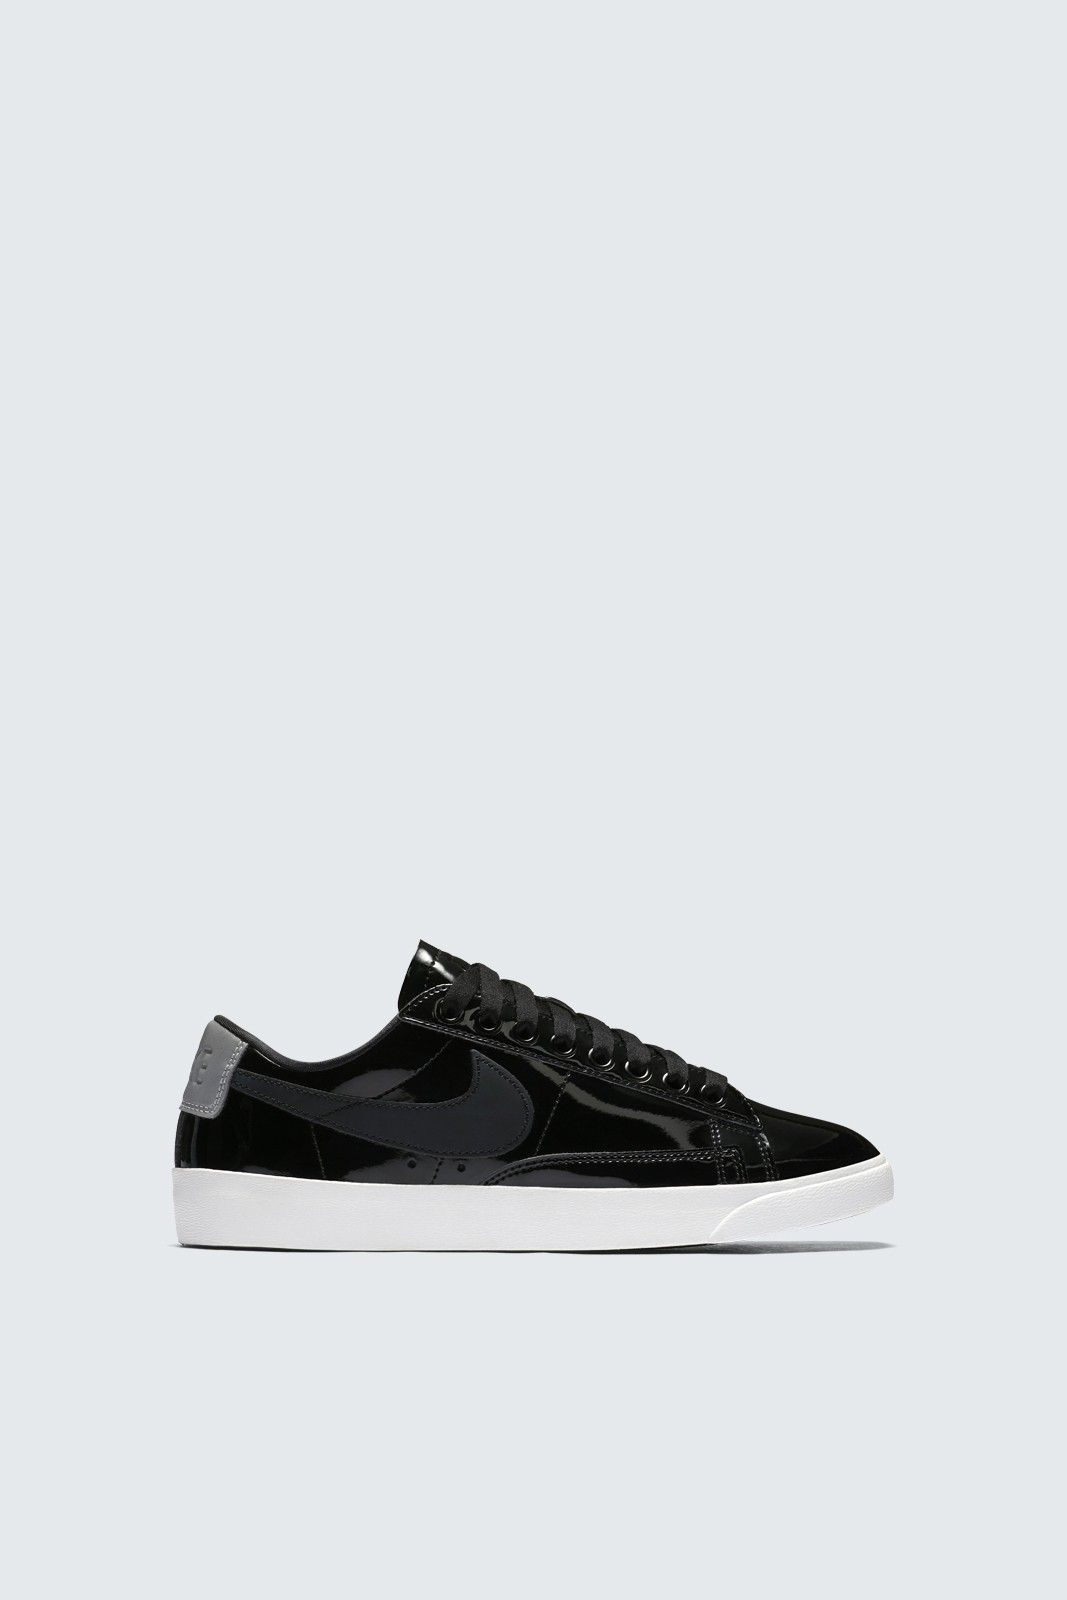 official photos 1ec18 a707f Nike | Fashion Sneakers | Sneakers fashion, Sneakers, Blazer